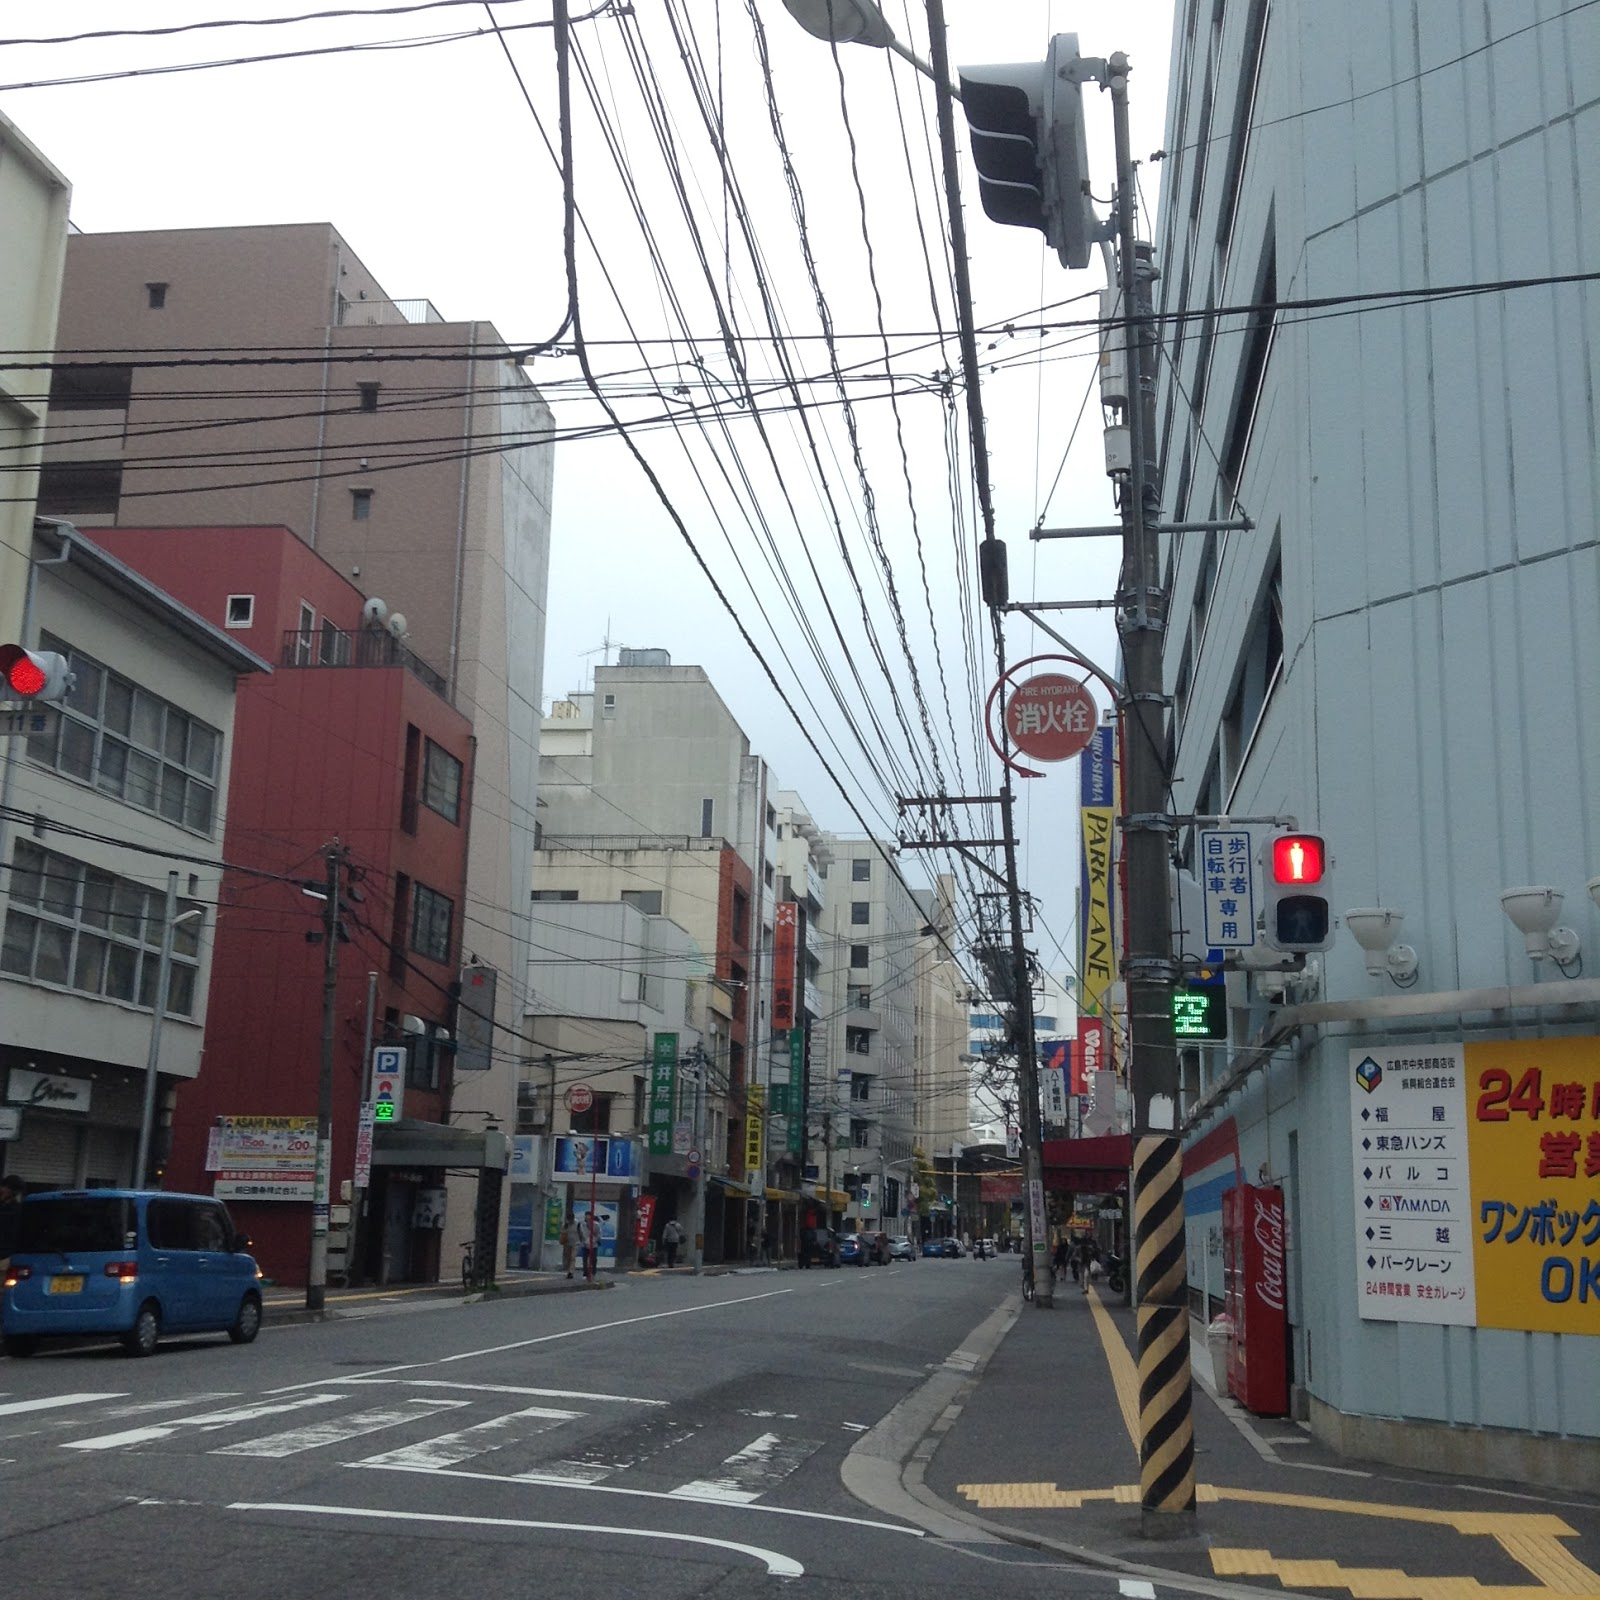 Japanese streets part 7